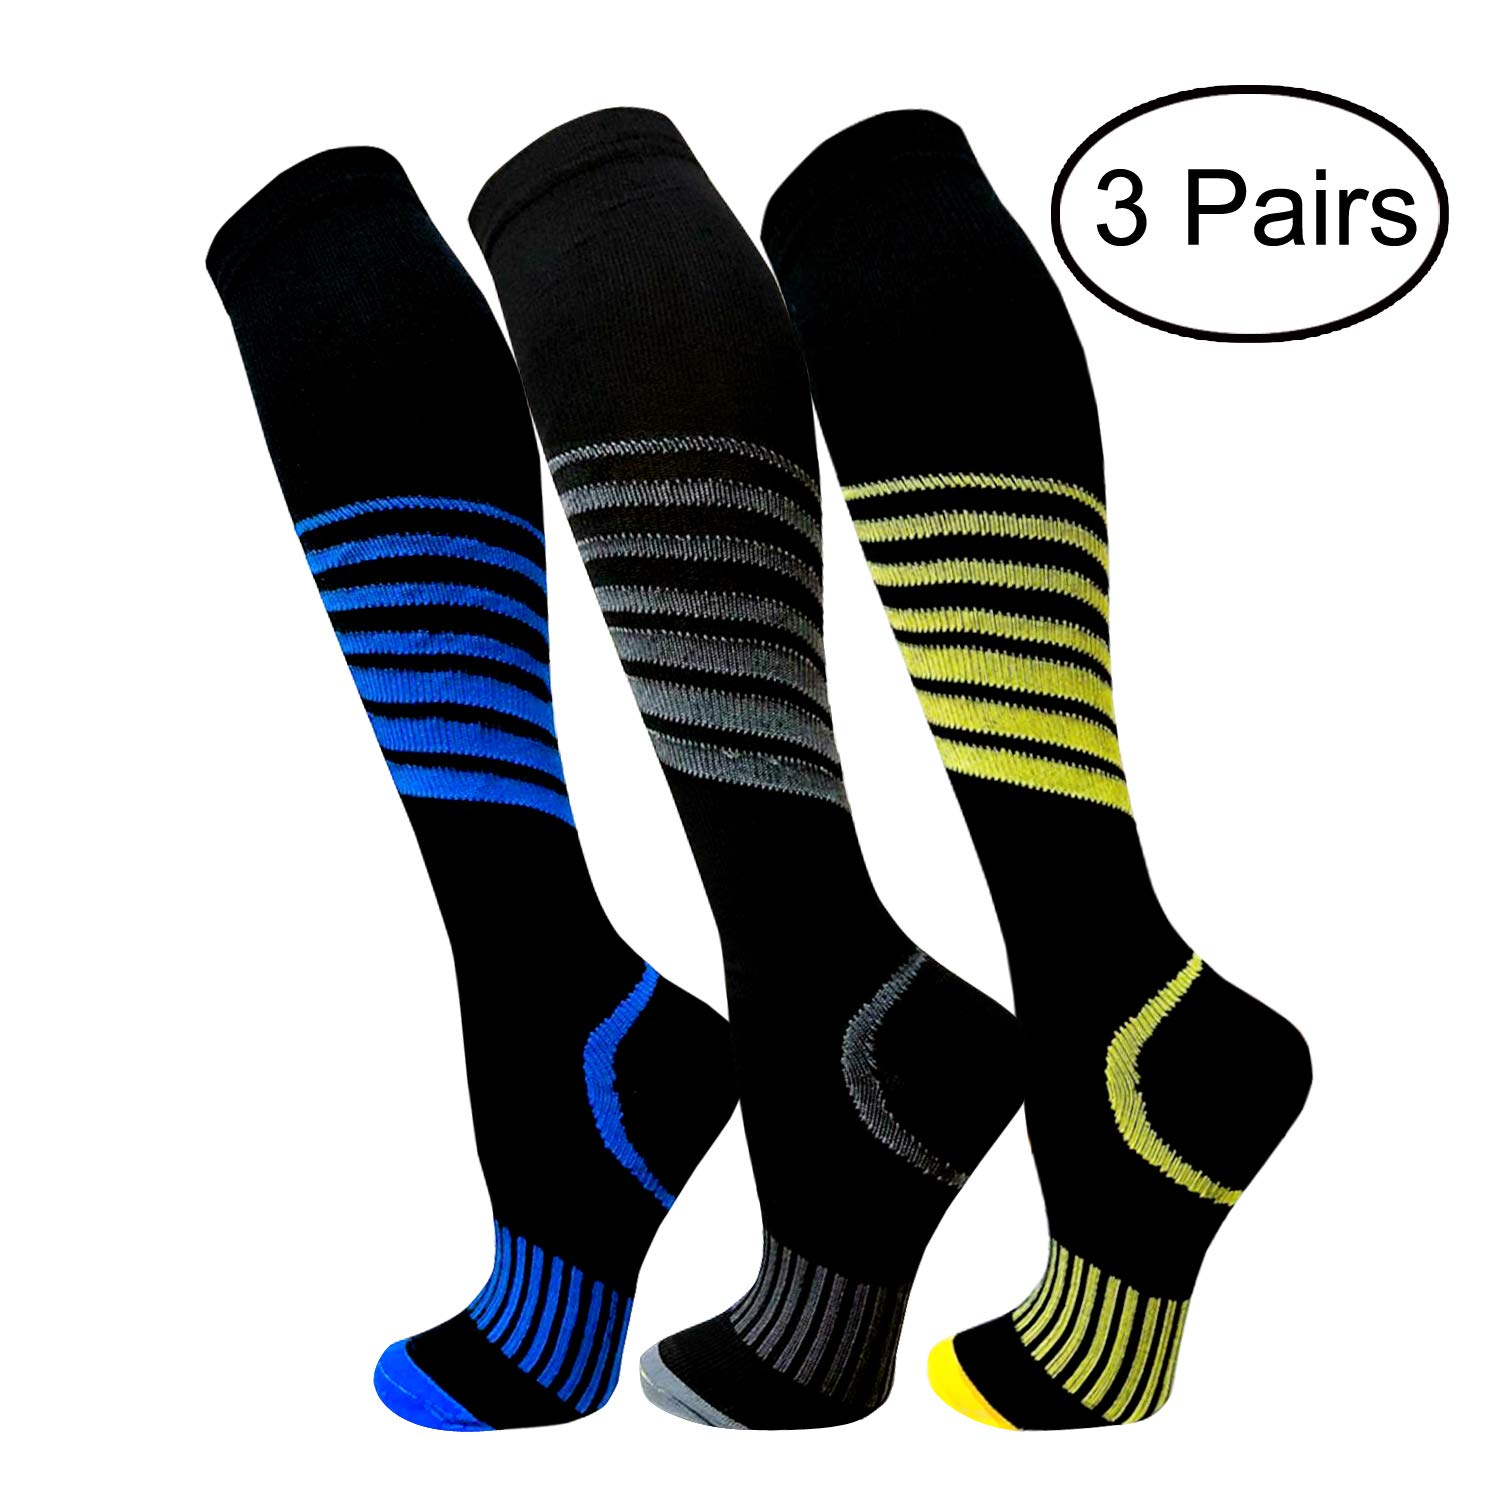 Copper Compression Socks For Men & Women(3 Pairs)- Best For Running,Athletic,Medical,Pregnancy and Travel -15-20mmHg (S/M, Multicoloured 12)